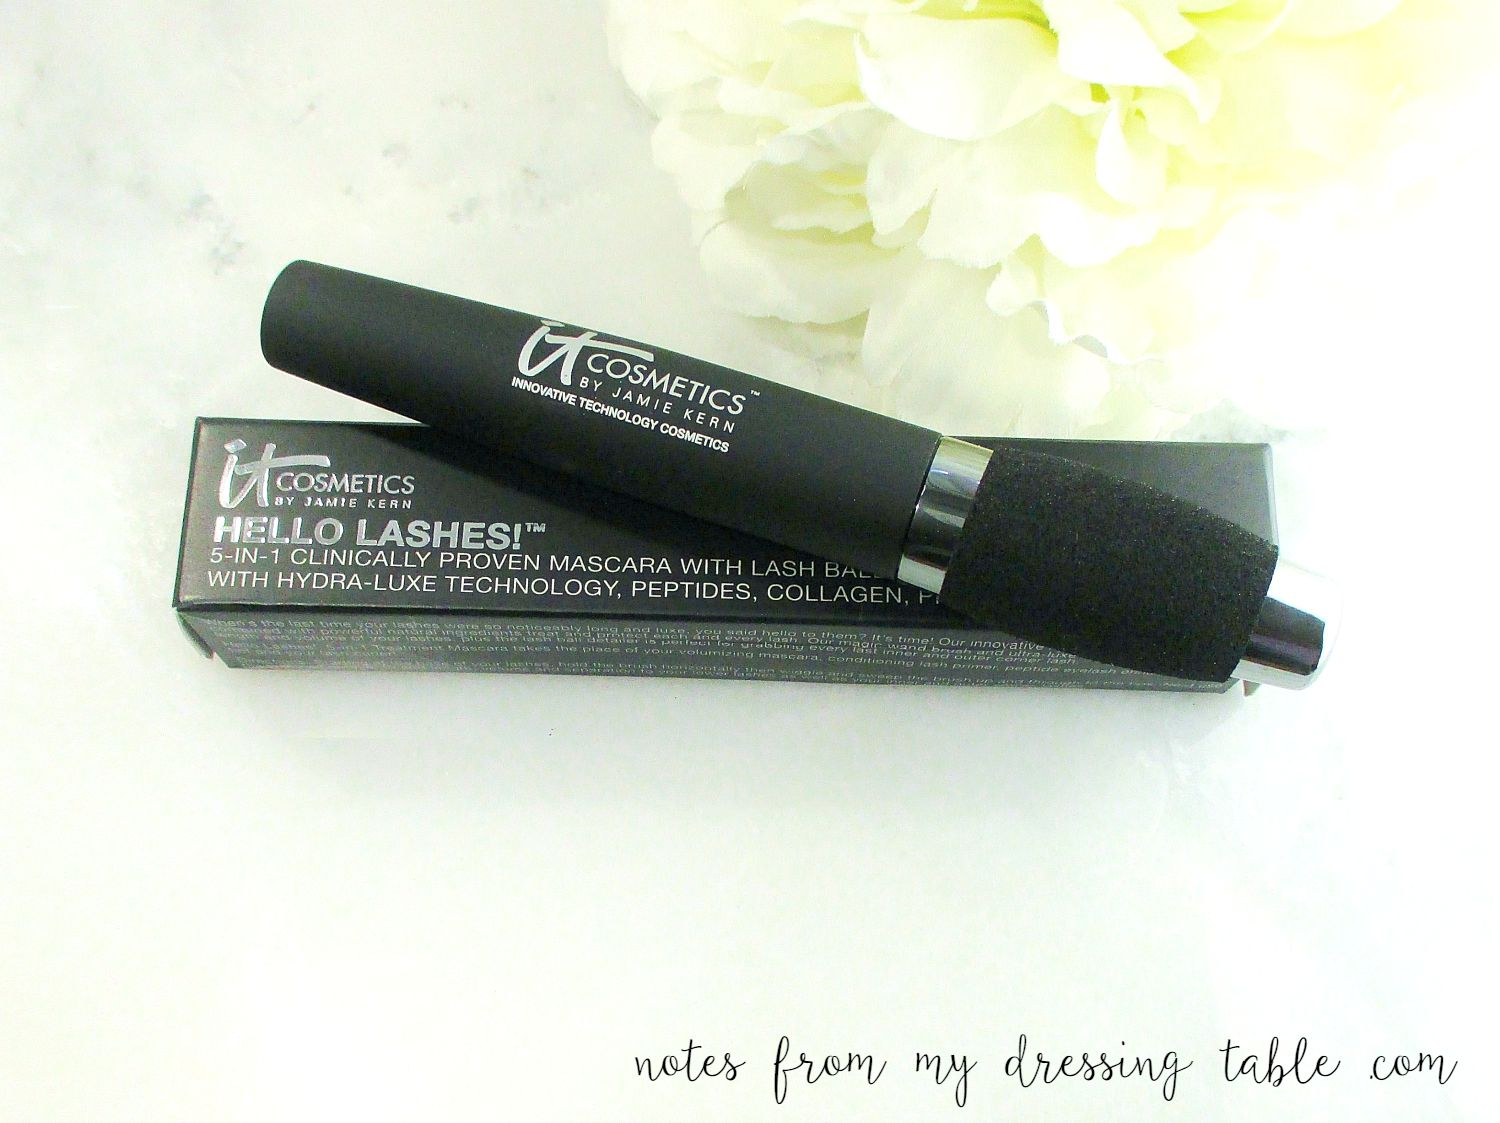 IT Cosmetics Hello Lashes mascara notesfrommydressingtable.com